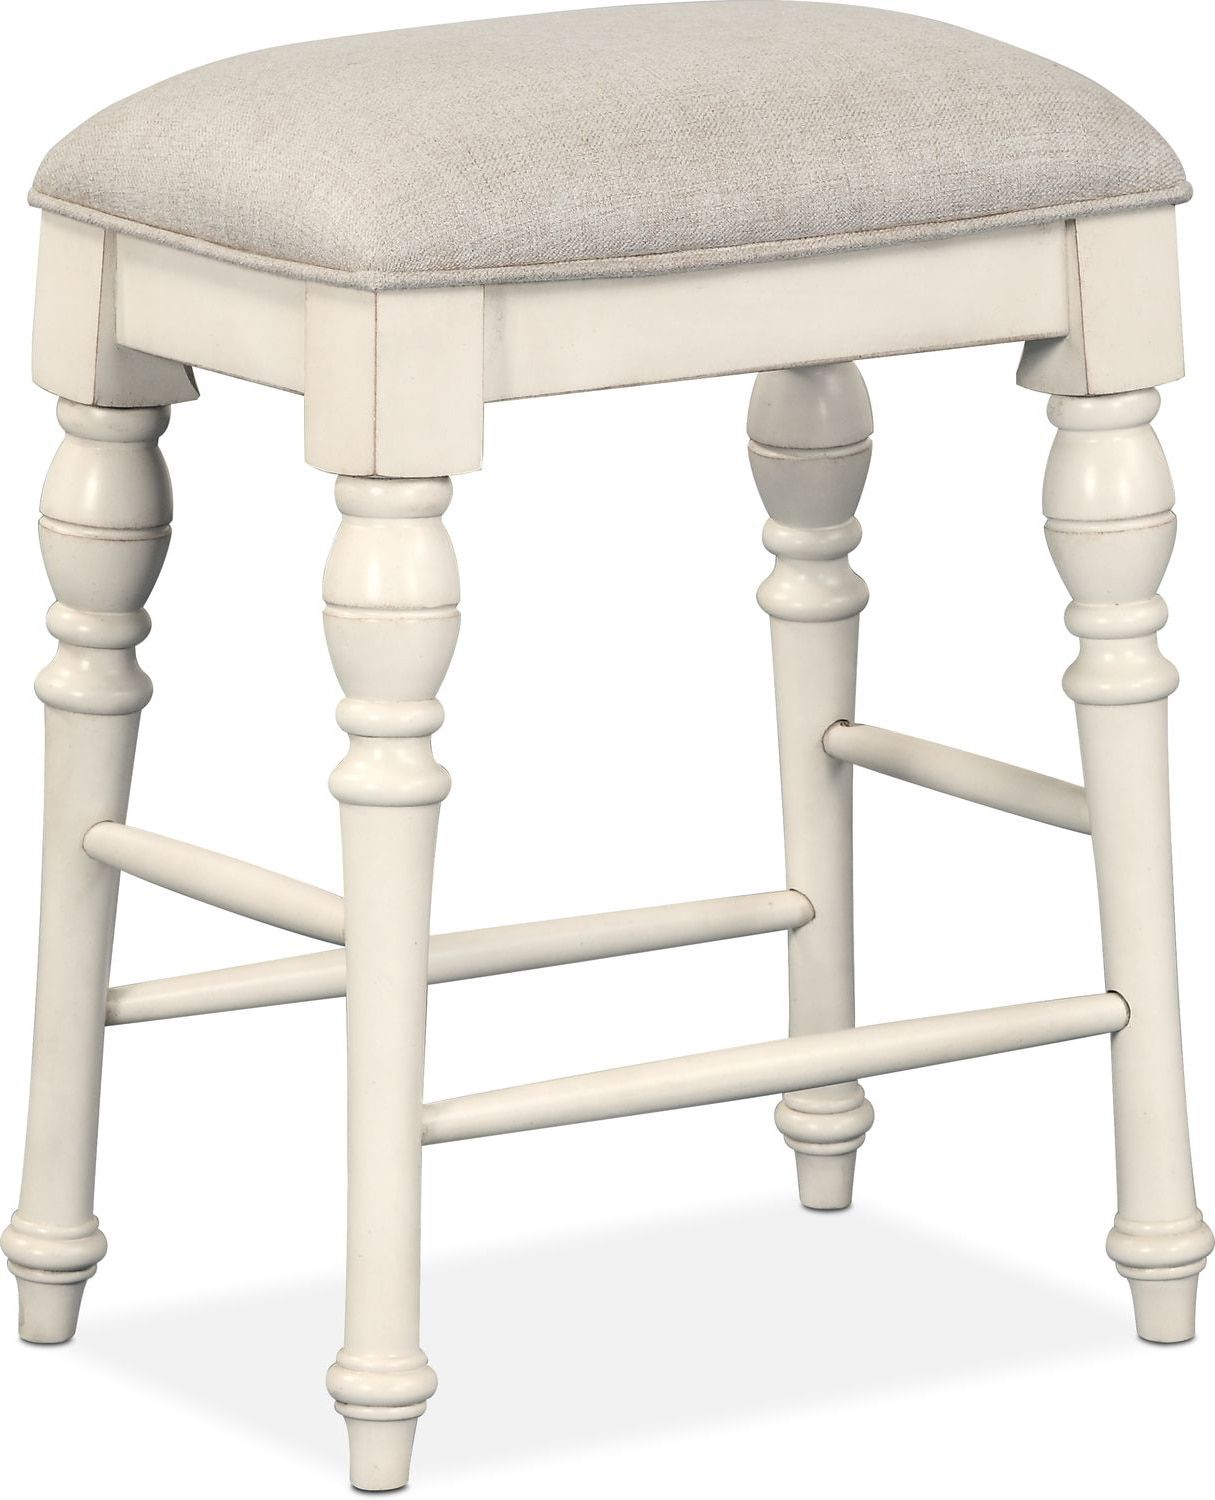 Farmhouse Living Channel The Serenity Of A Quaint Cottage With The Charleston Counter Height Backle Backless Stools White Bar Stools Counter Height Bar Stools